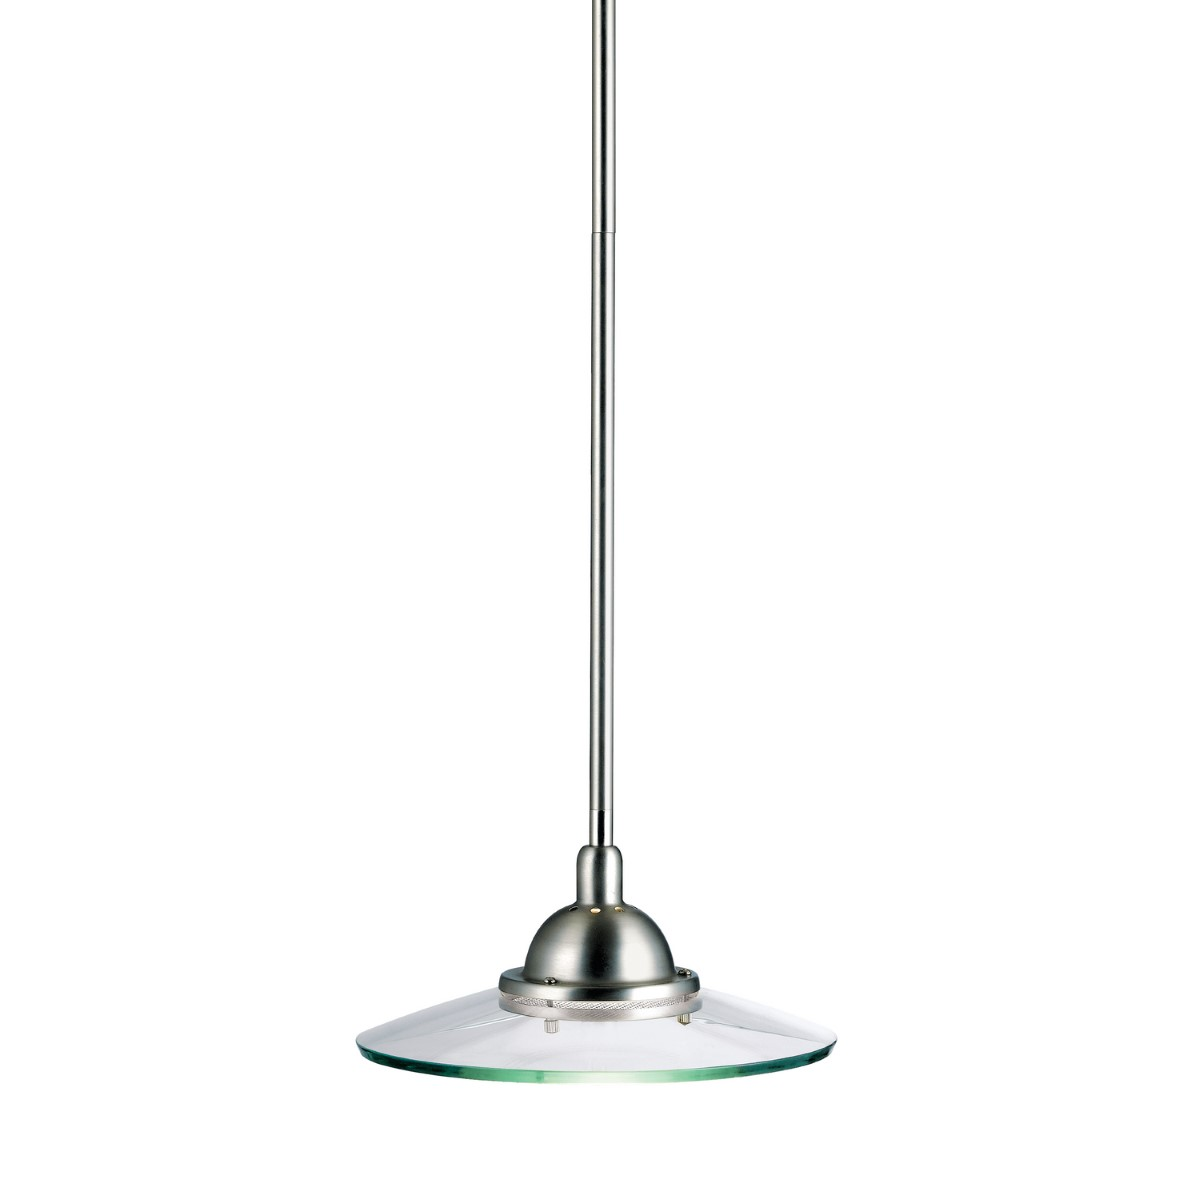 Kichler Galaxie Galaxie Pendant Light with Clear Steel Shade - Brushed Nickel (2641NI)